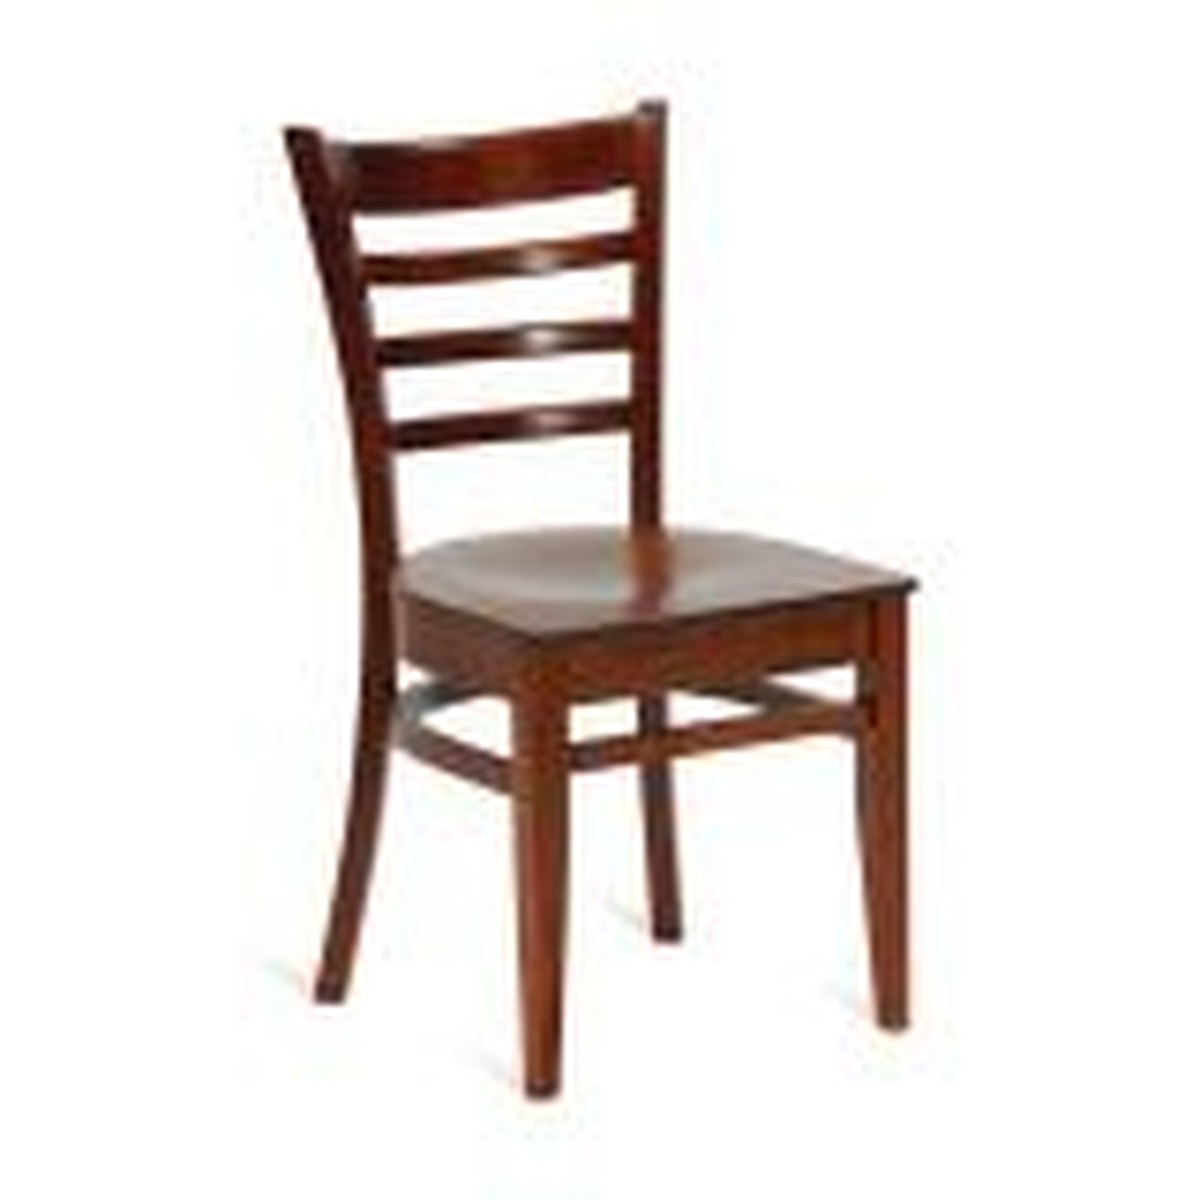 Secondhand Chairs And Tables Restaurant Chairs 40x